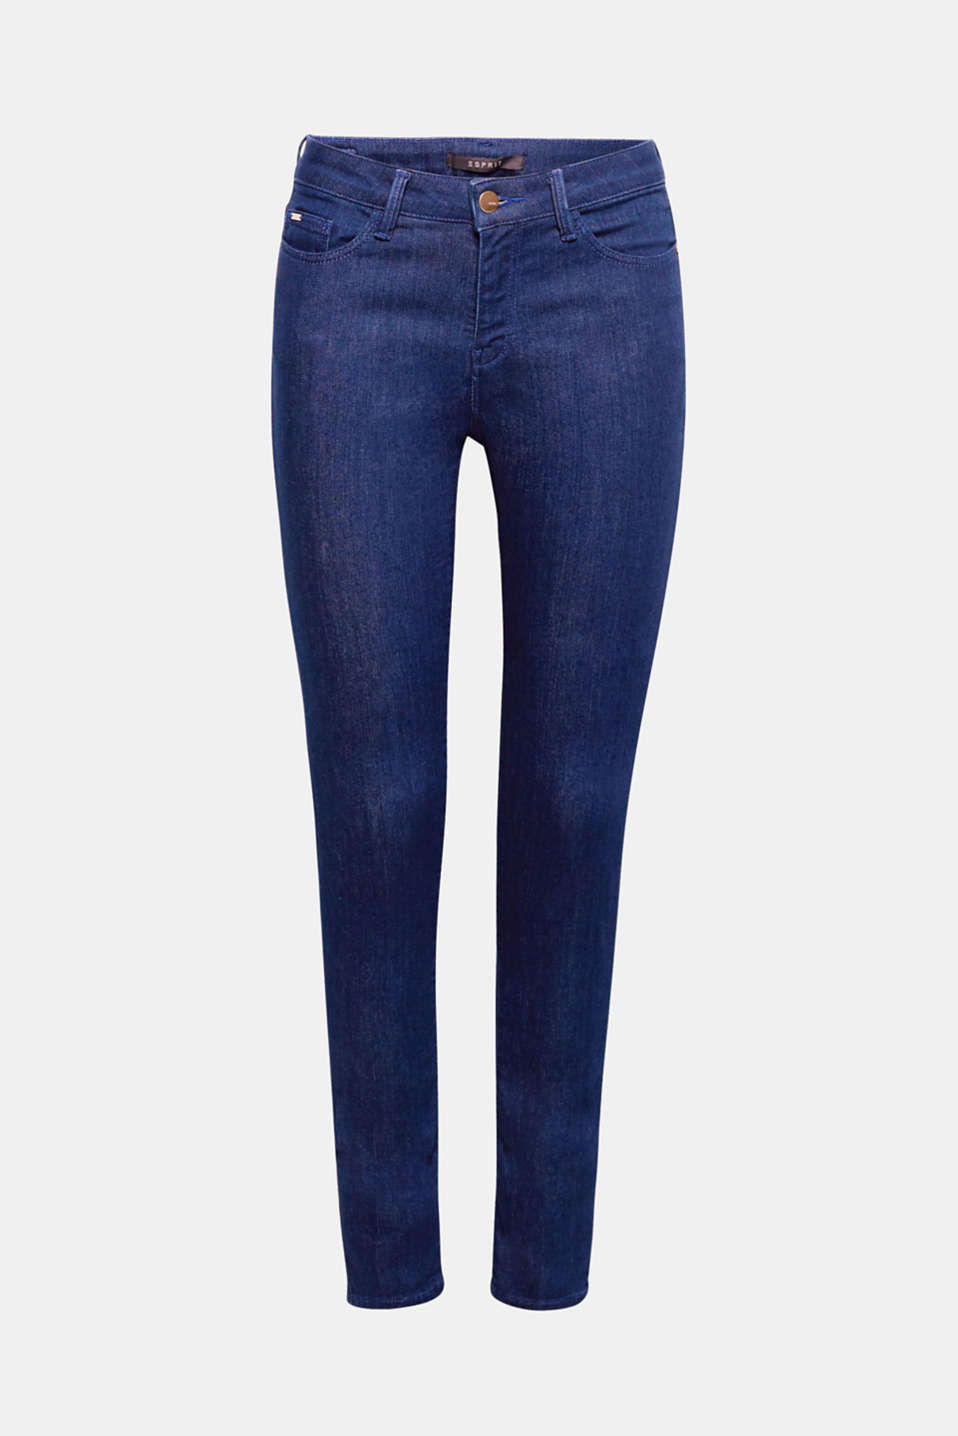 The clear blue shade accentuates the slim silhouette of these comfortable stretch jeans in a sleek five-pocket style!